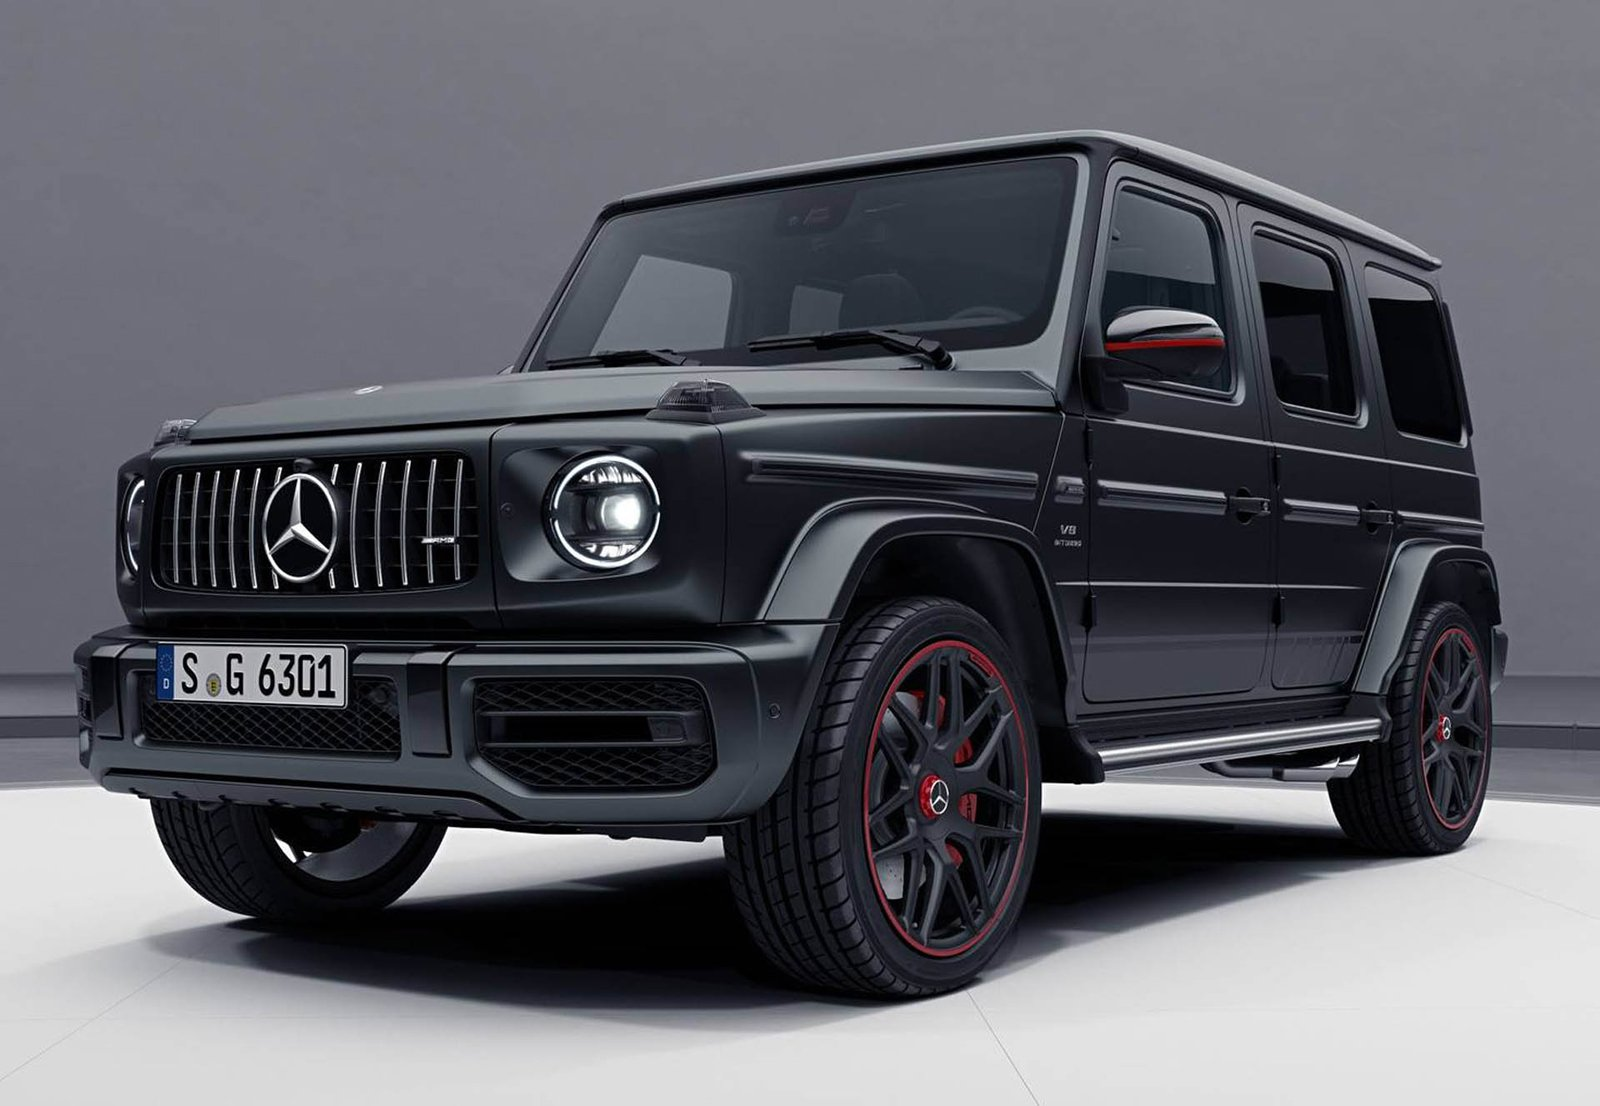 2018 mercedes amg g63 edition 1 is the most menacing g class yet news. Black Bedroom Furniture Sets. Home Design Ideas